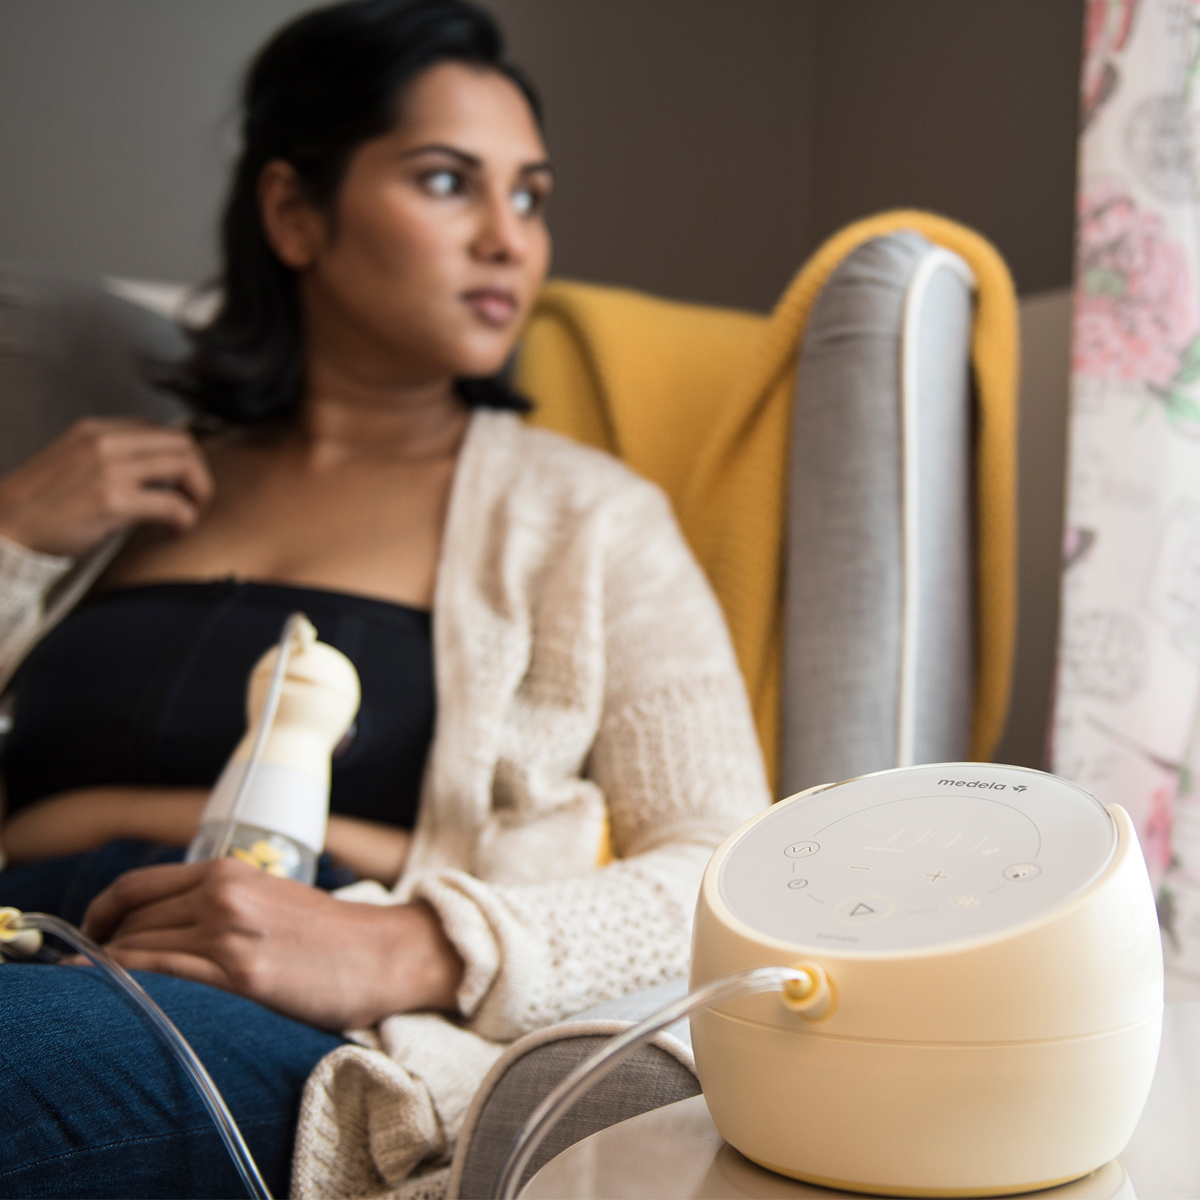 Medela Sonata Breast Pump with woman